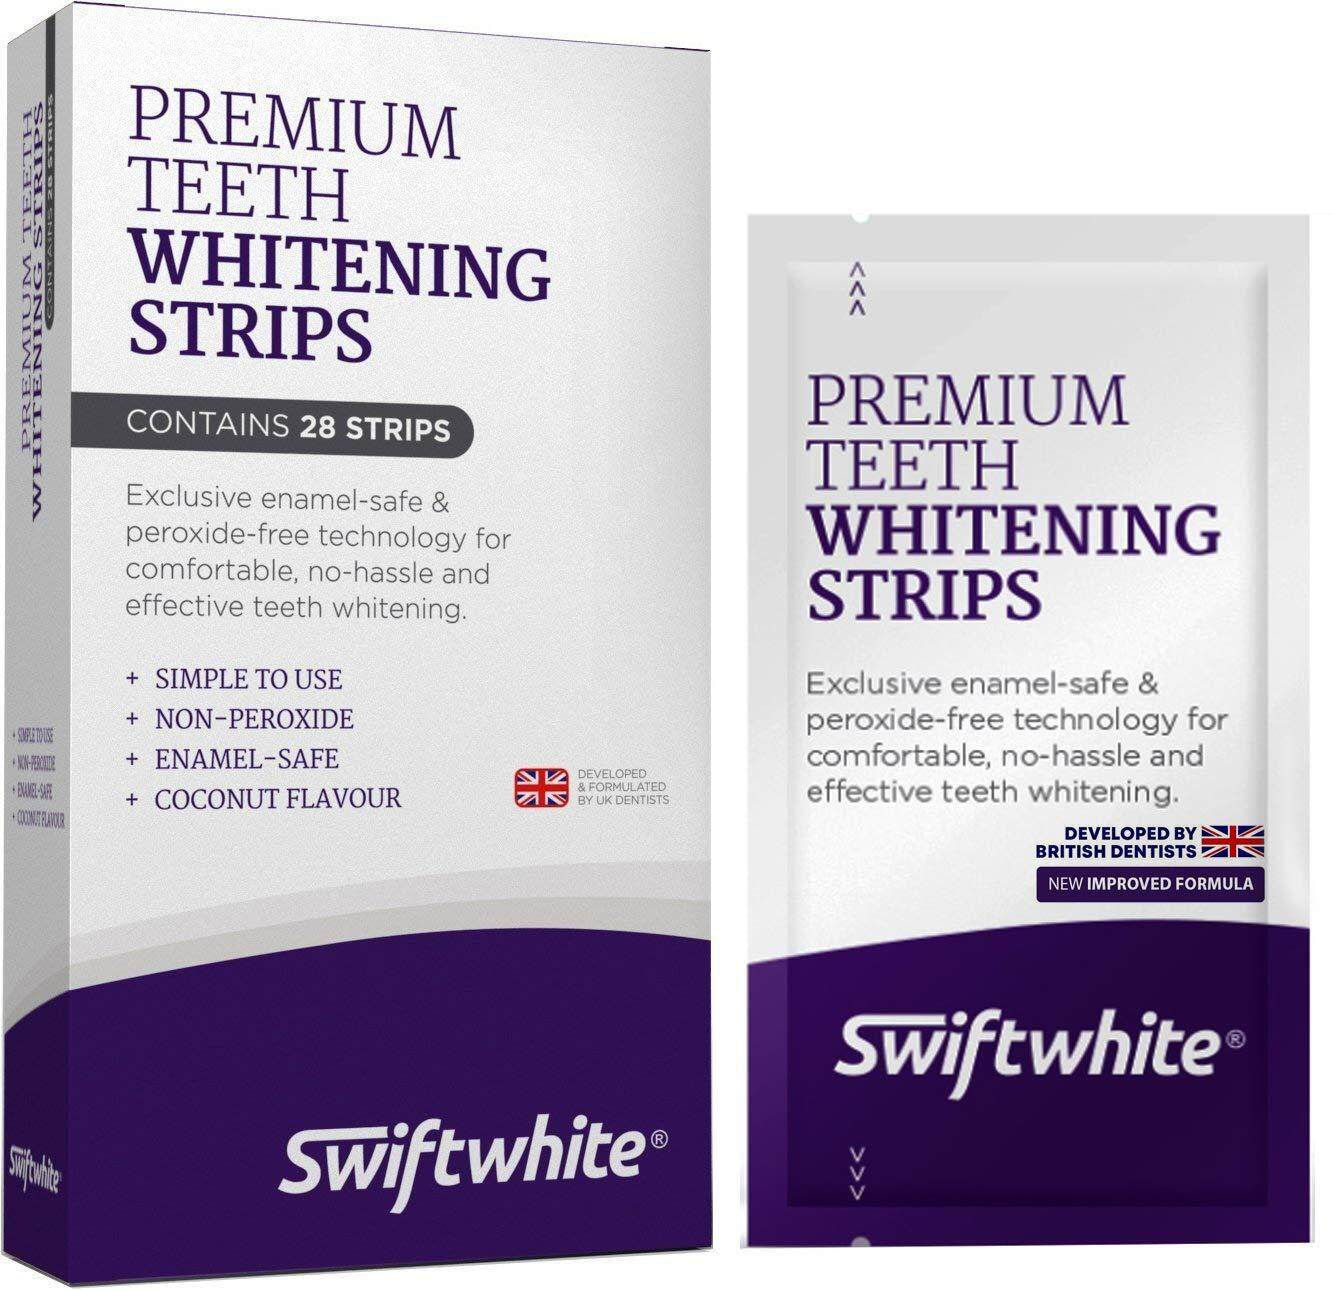 SWIFTWHITE Teeth Whitening Strips, Fast Results & No Sensitivity, Superior Than Crest 3D Whitestrips and HiSmile Teeth Whitening Kits